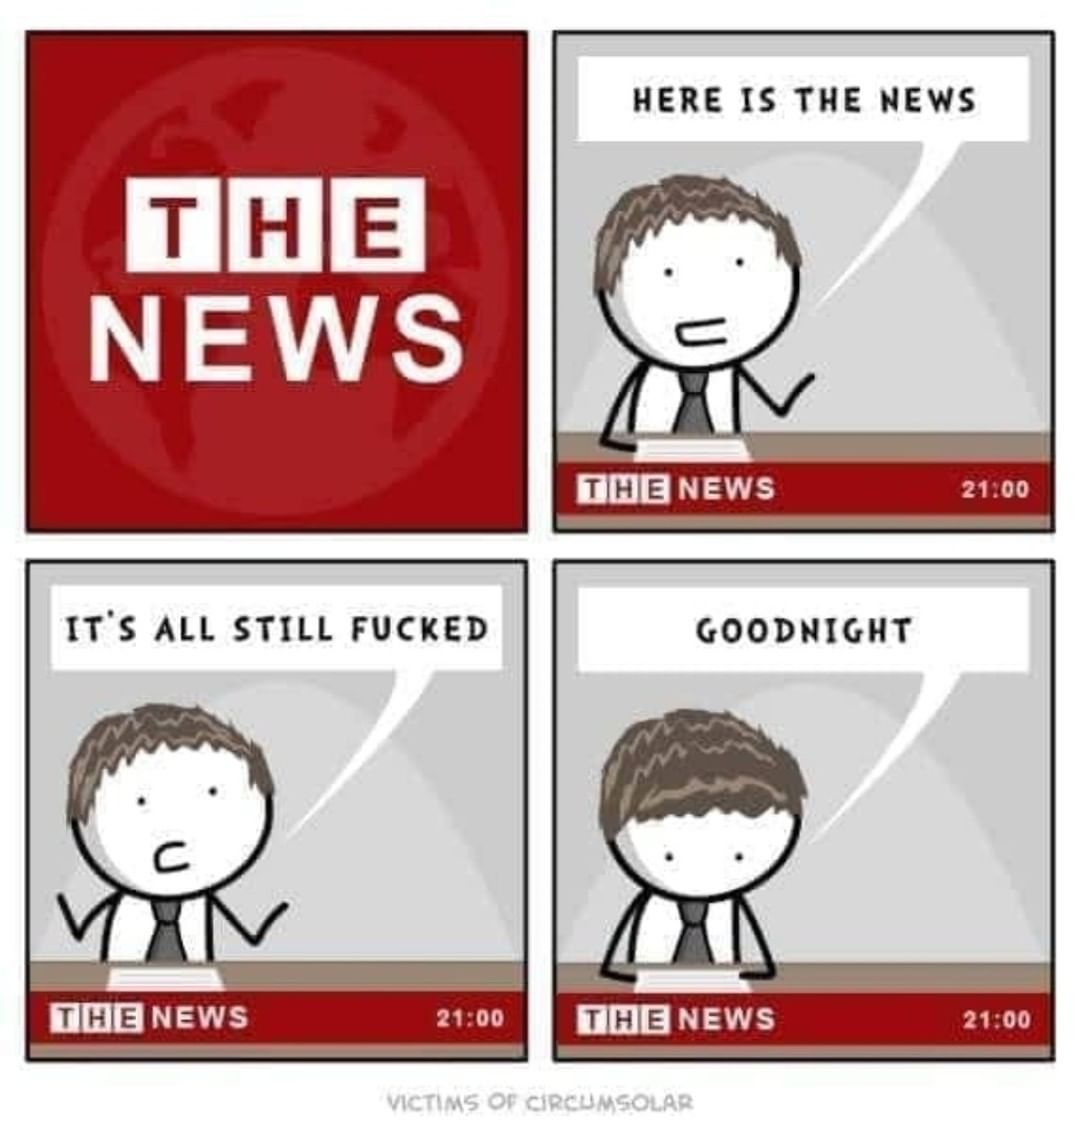 Basically any news channel these days smh